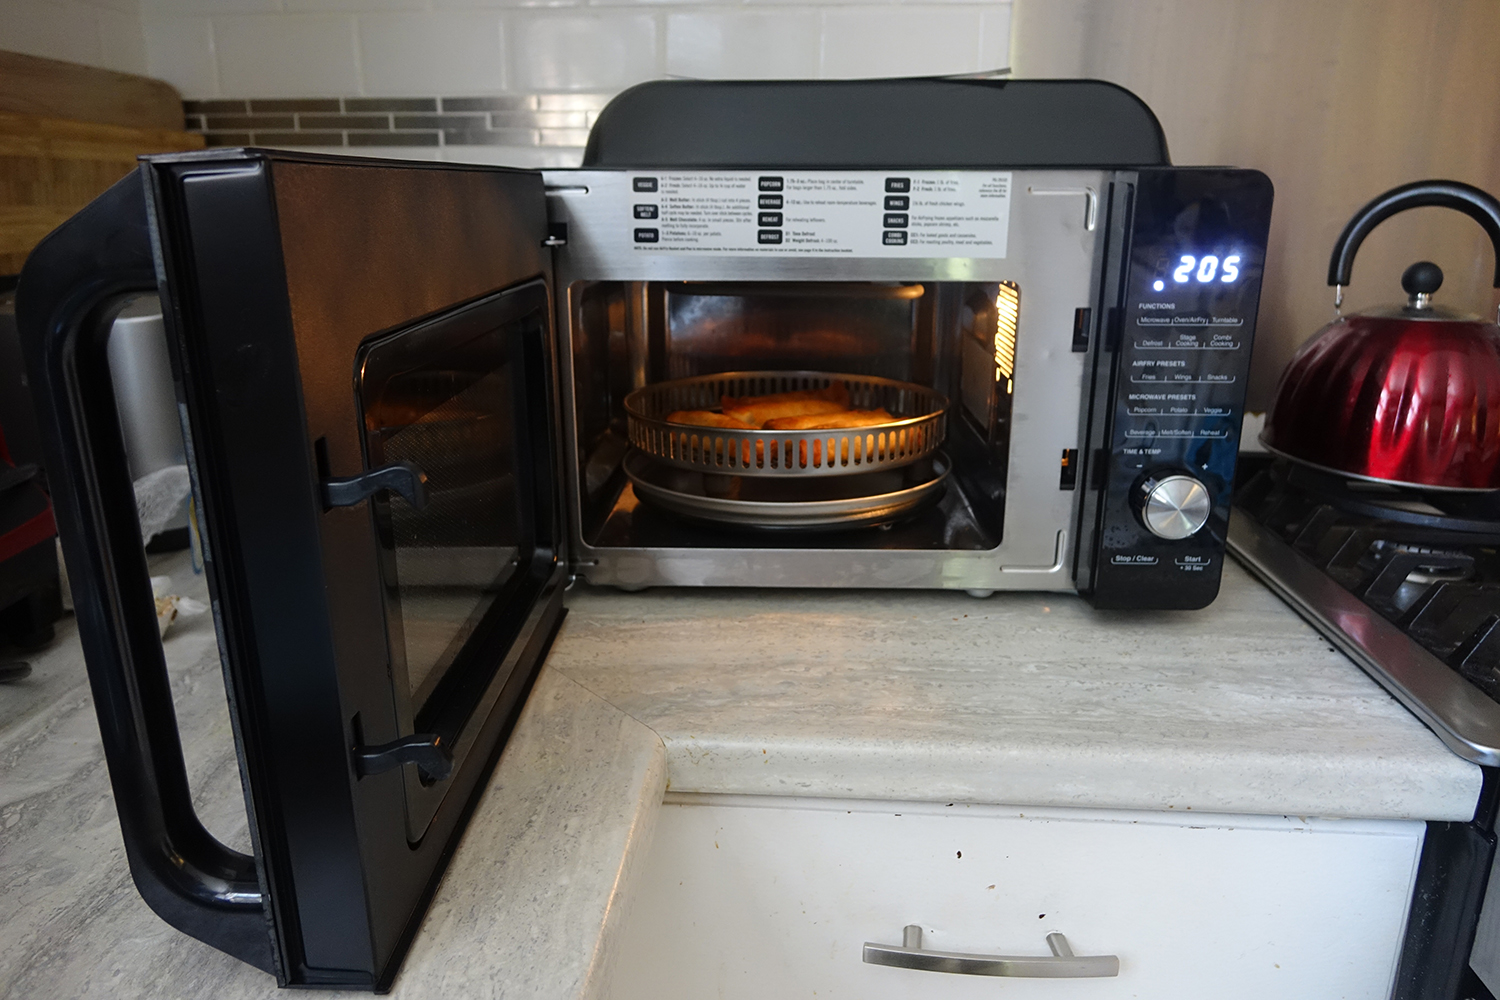 Cuisinart 3-in-1 is a multifunction appliance that's an air fryer, toaster, convection oven on the counter.